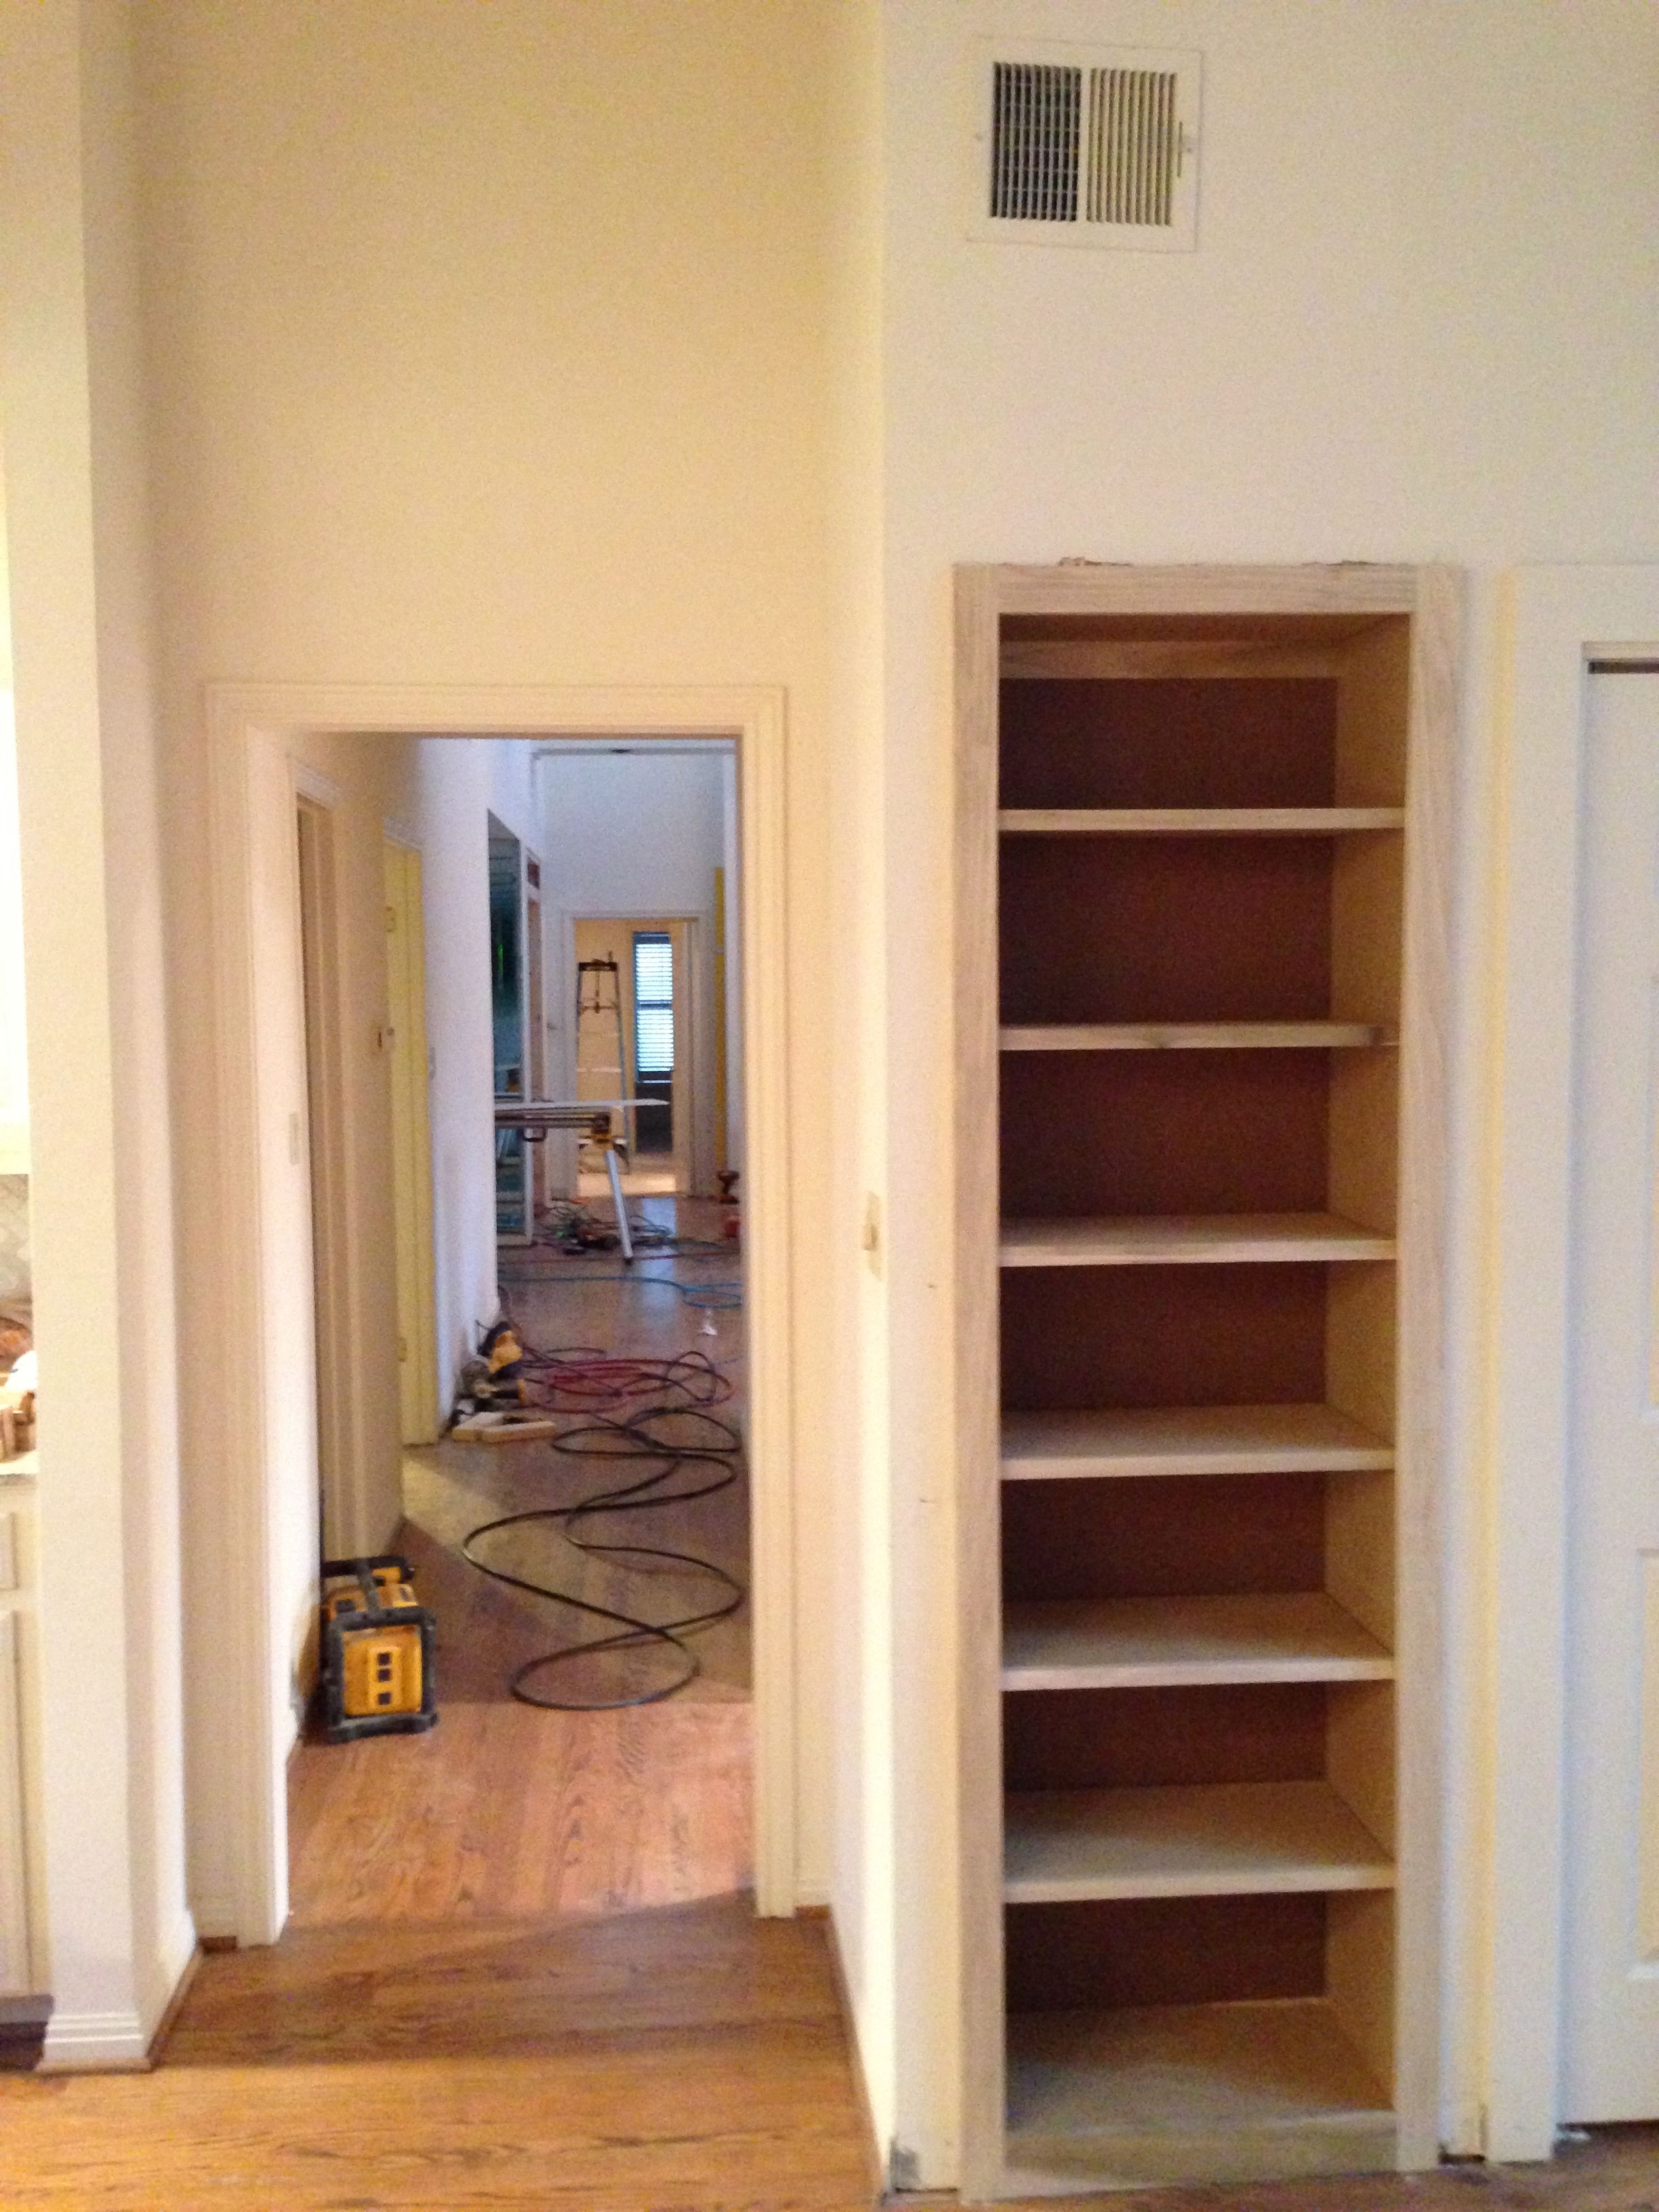 The bookcase for the Client's collection of cookbooks has been installed.